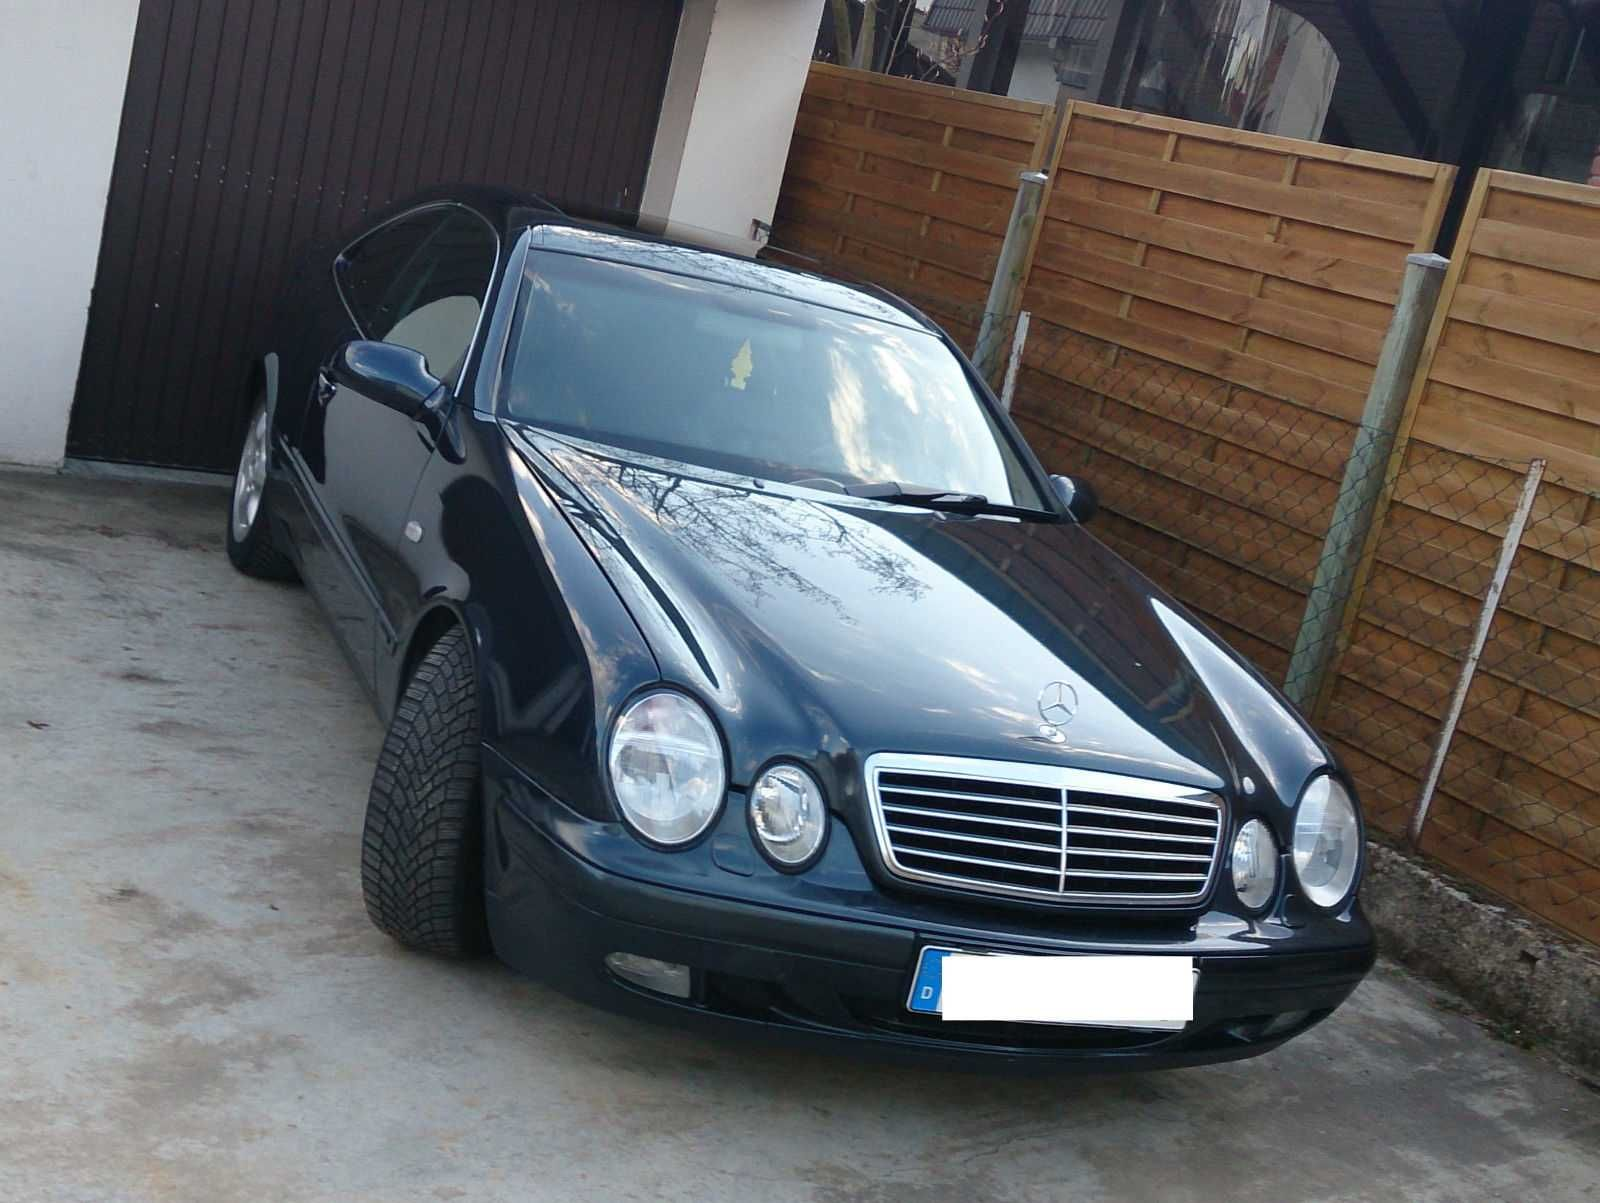 CLK 320 Mercedes Benz [01] CLK Pinterest